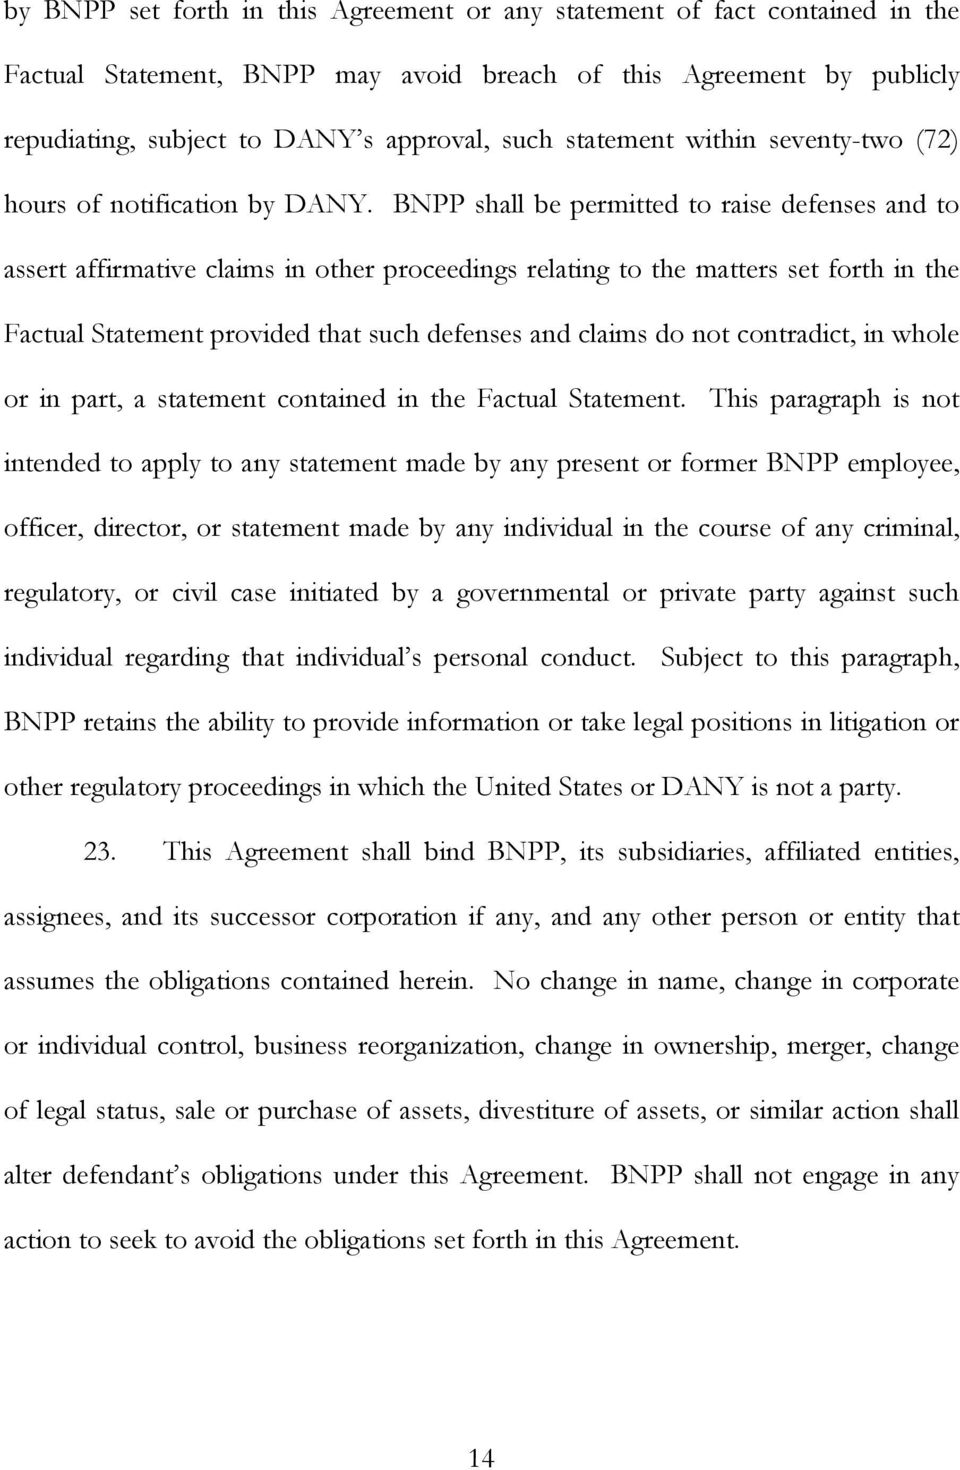 BNPP shall be permitted to raise defenses and to assert affirmative claims in other proceedings relating to the matters set forth in the Factual Statement provided that such defenses and claims do